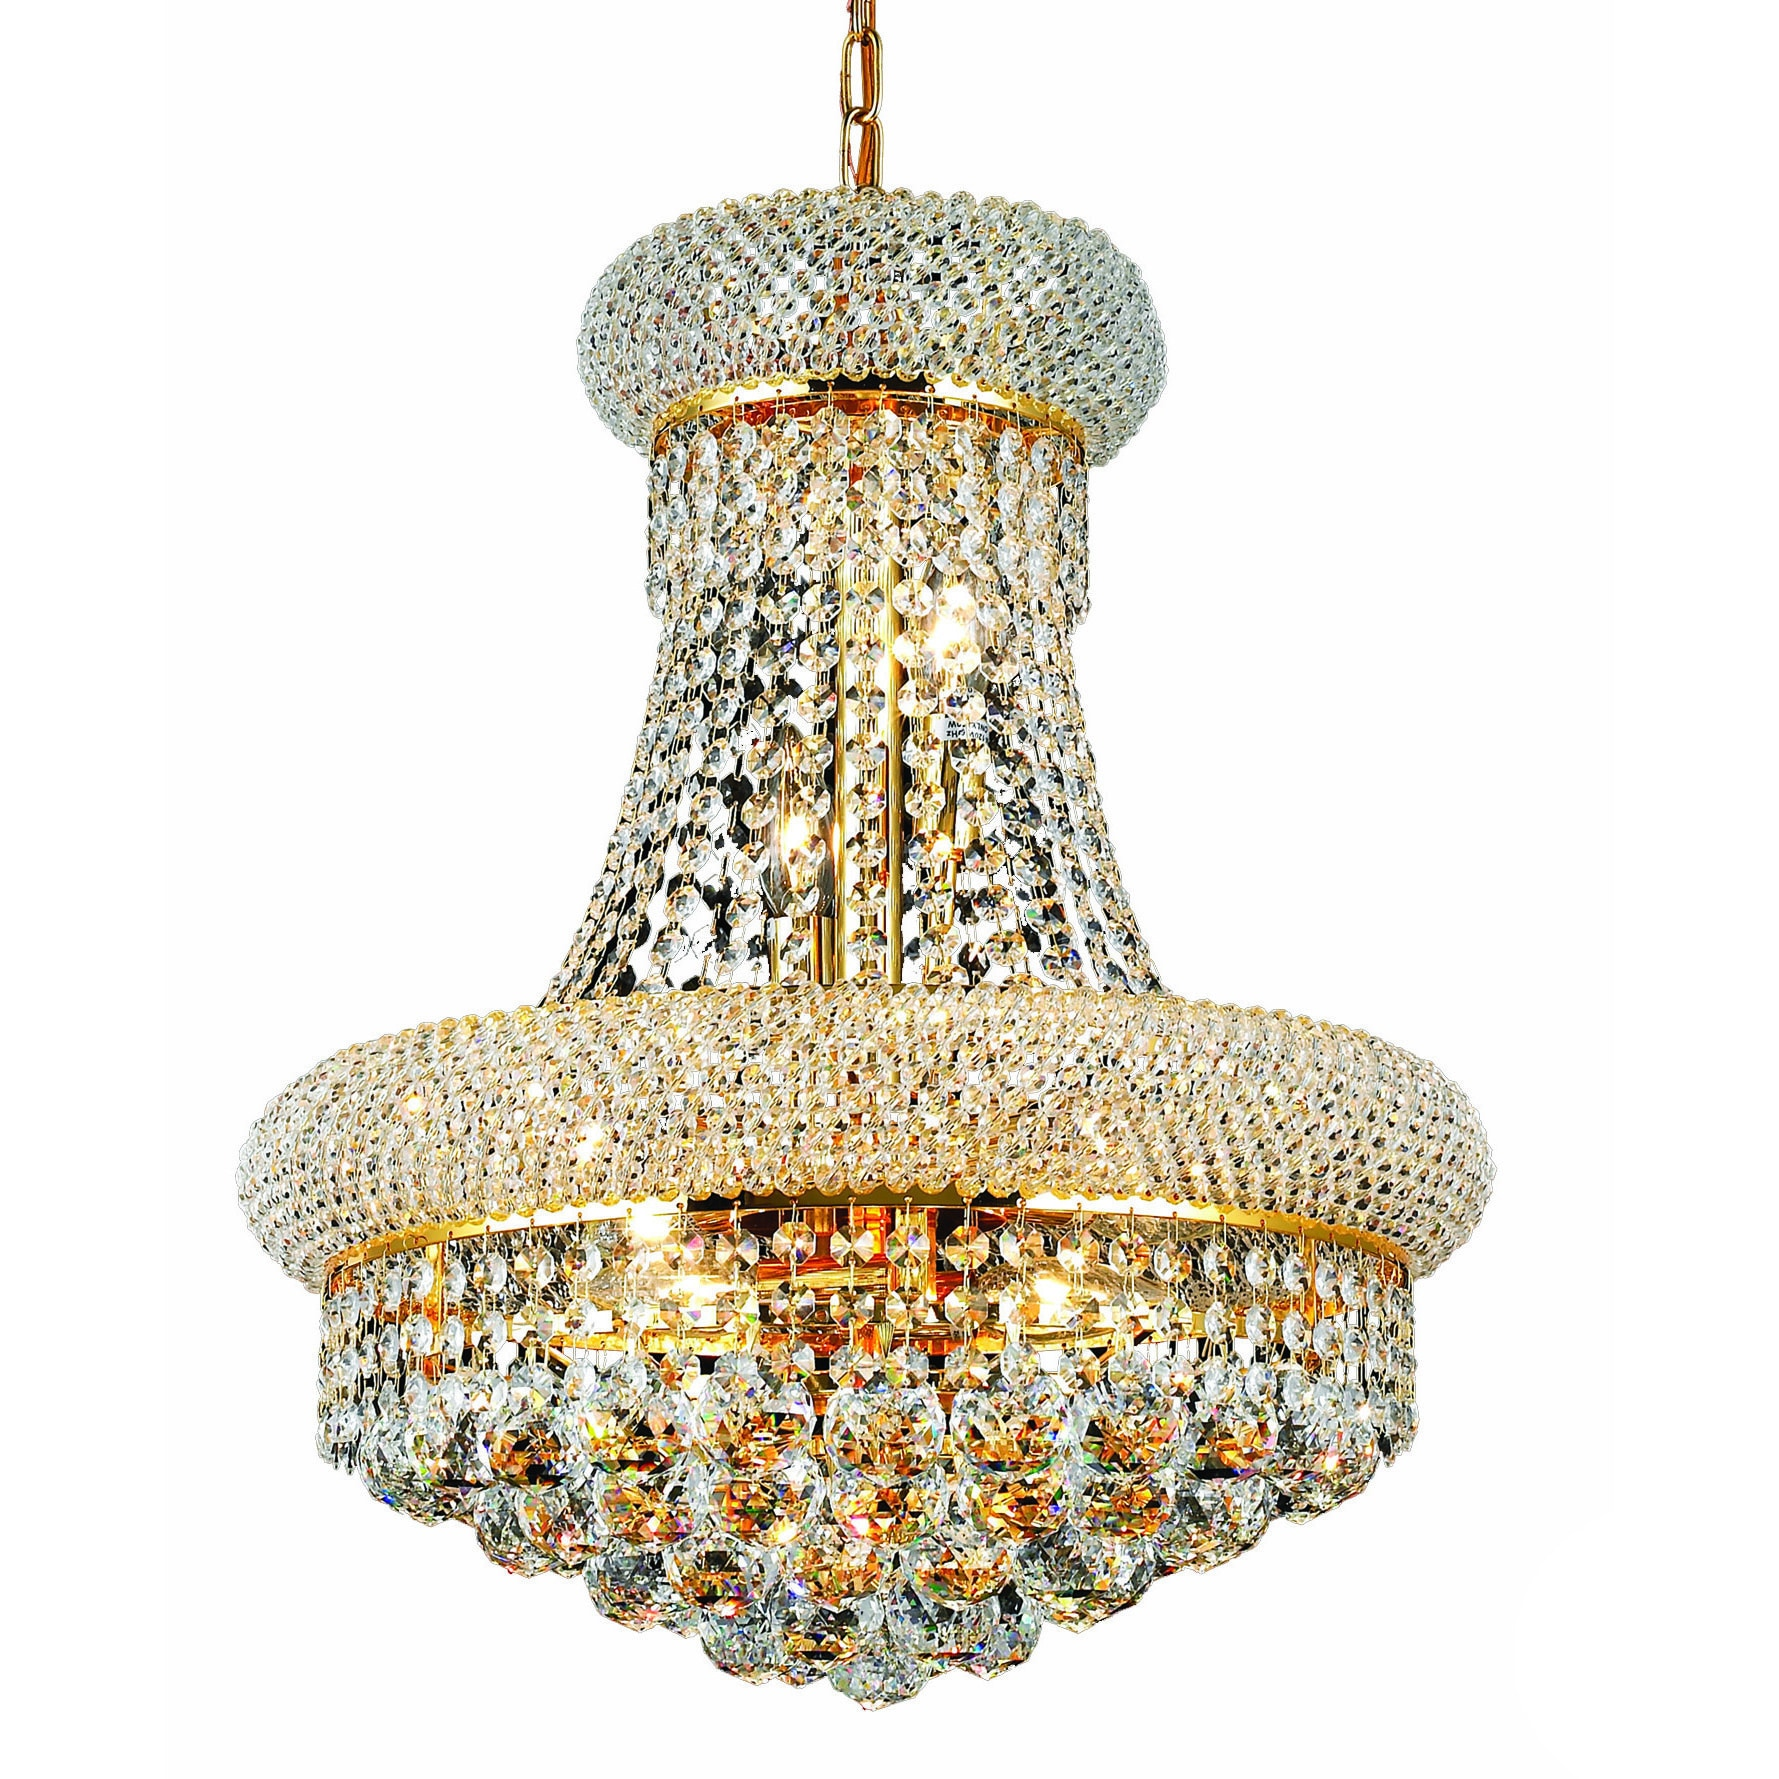 Somette geneva 8 light royal cut crystal and gold chandelier free somette geneva 8 light royal cut crystal and gold chandelier free shipping today overstock 15767186 arubaitofo Image collections